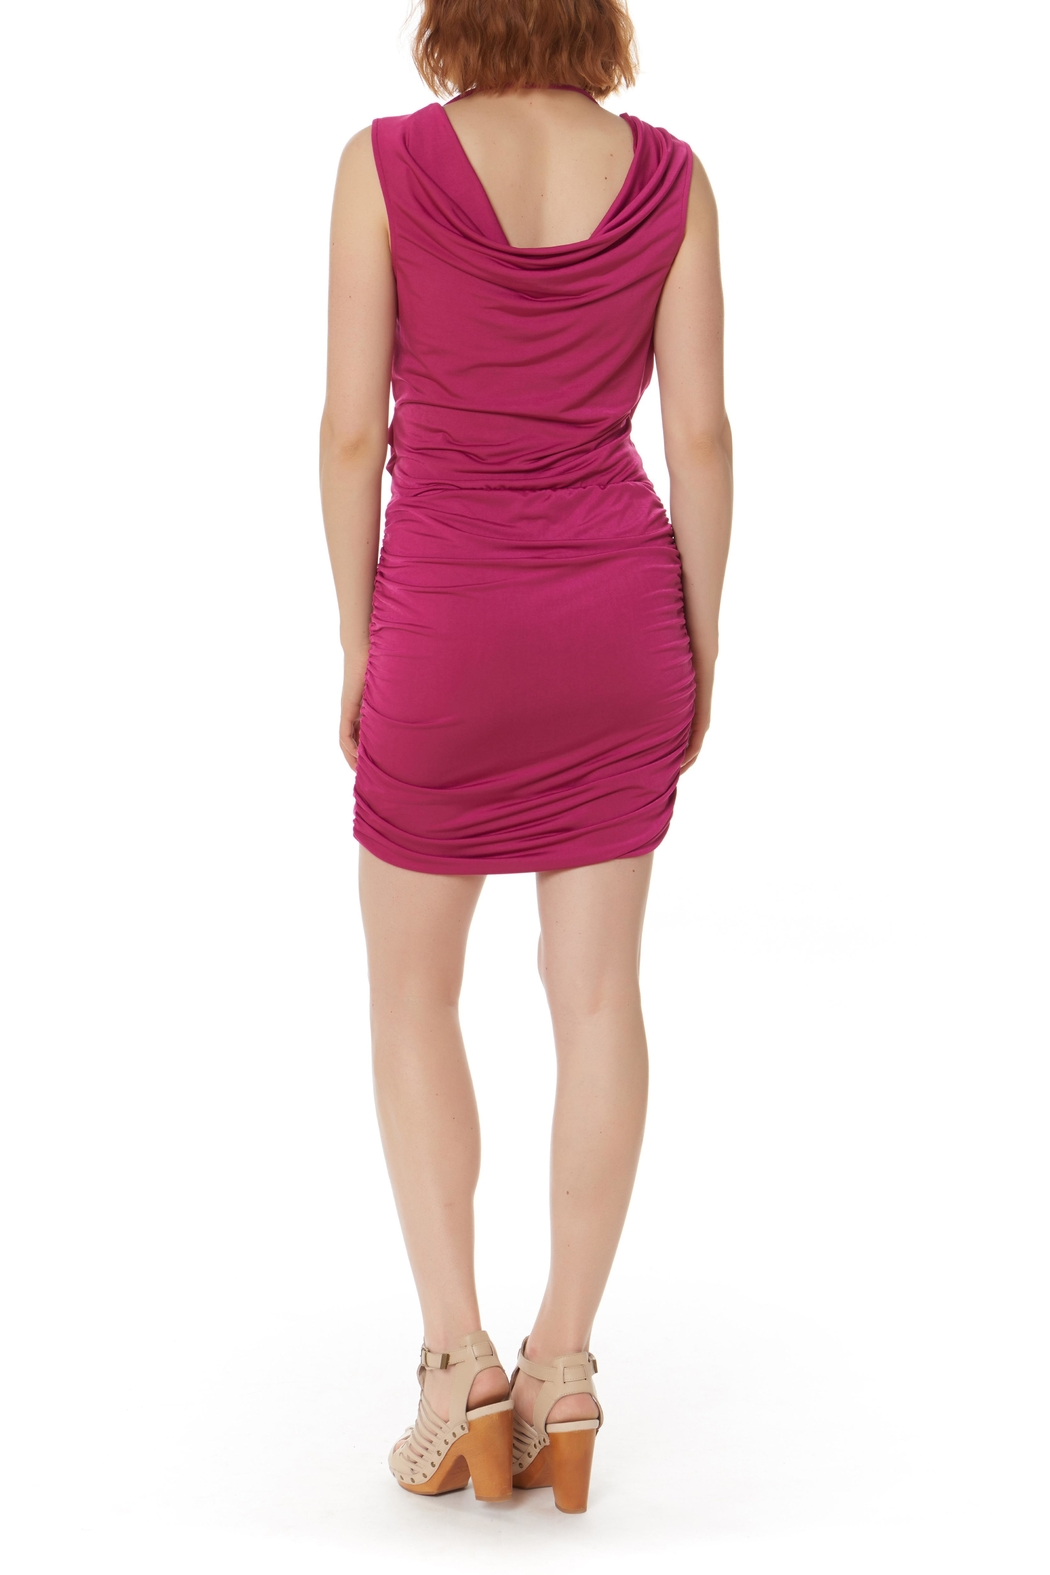 Bobi Los Angeles Shirred Side Dress - Back Cropped Image